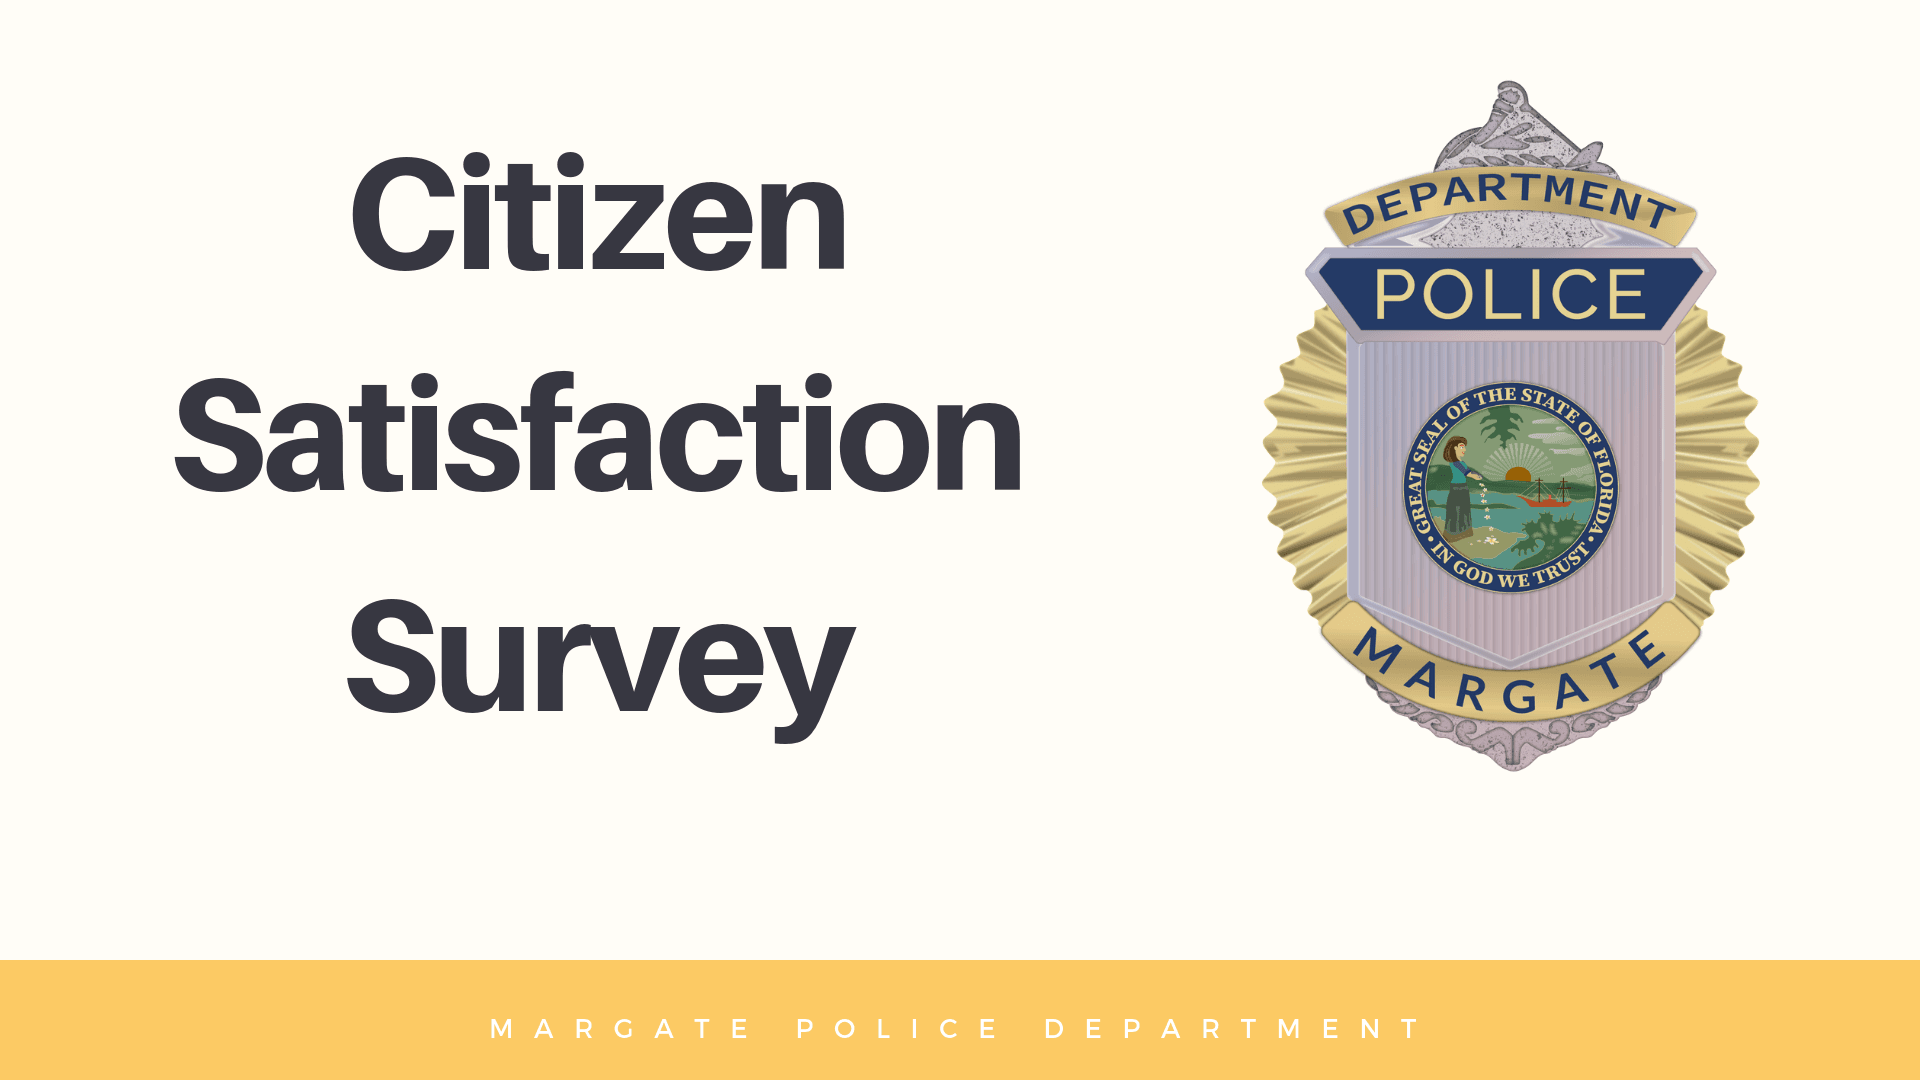 Margate Police Departemnt Citizen Satisfaction Survey